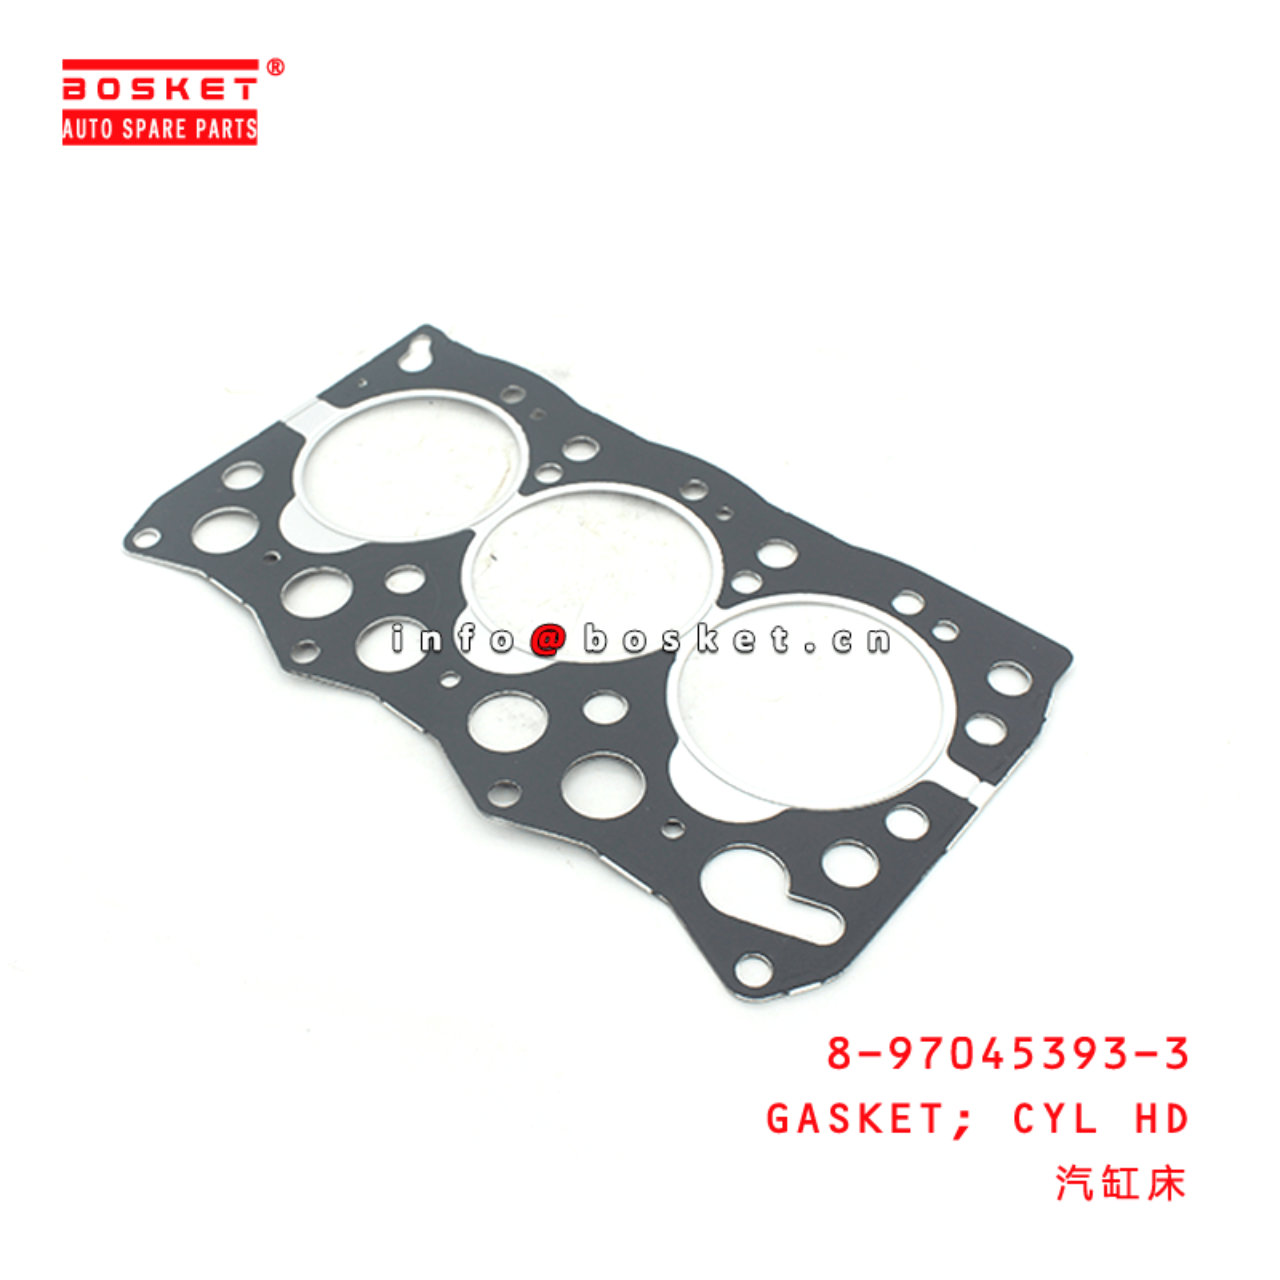 8-97045393-3 Cylinder Head Gasket 8970453933 Suitable for ISUZU XD 3LD1